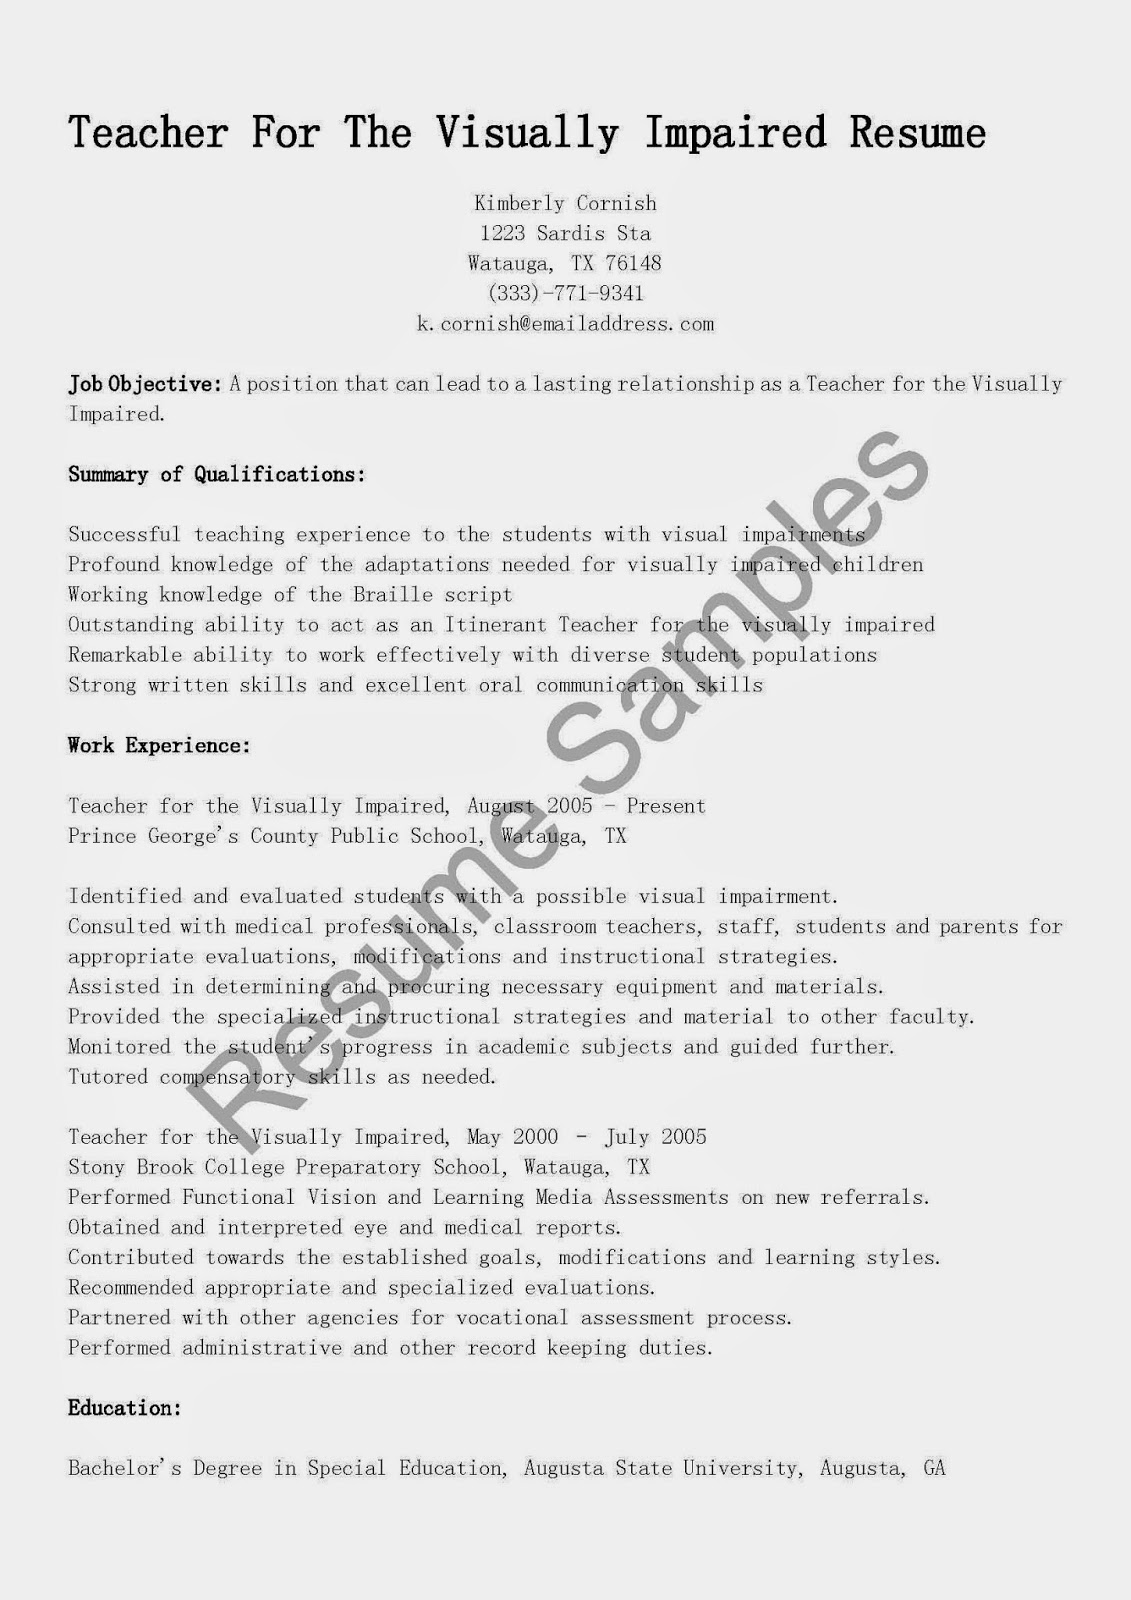 resume samples  teacher for the visually impaired resume